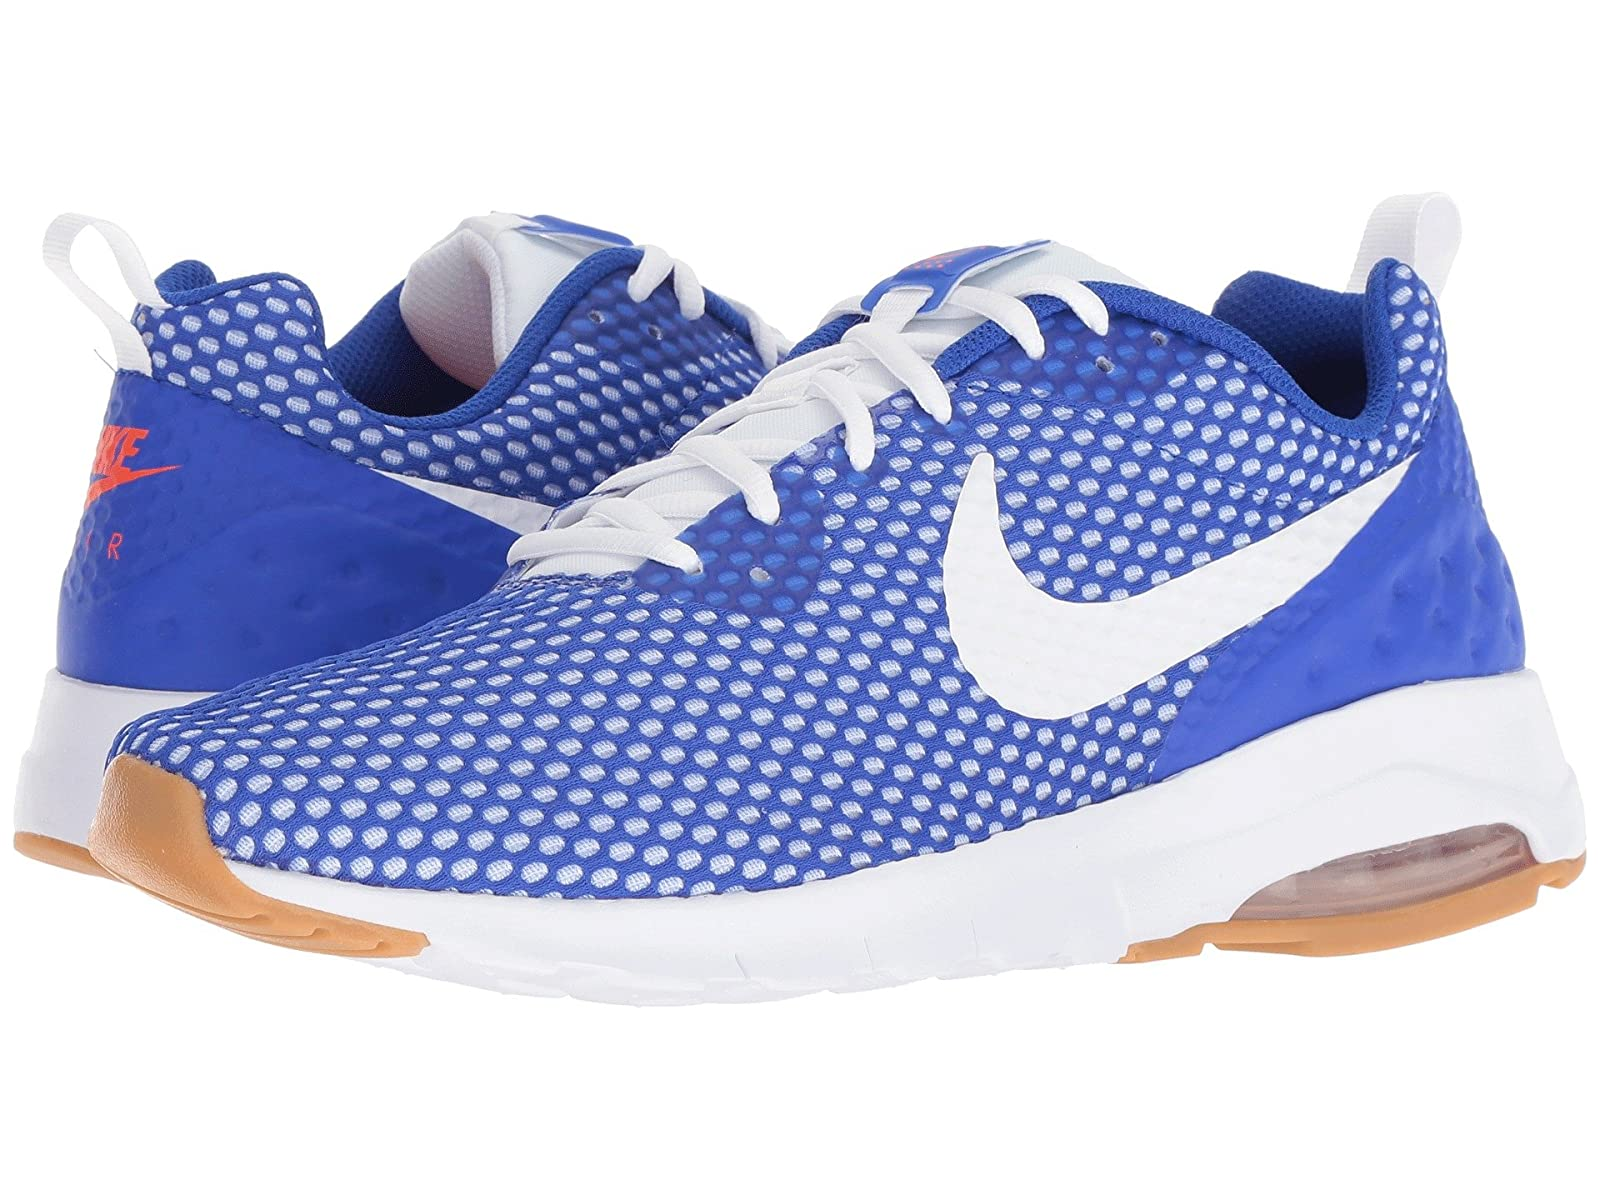 Nike Air Max Motion Low SECheap and distinctive eye-catching shoes